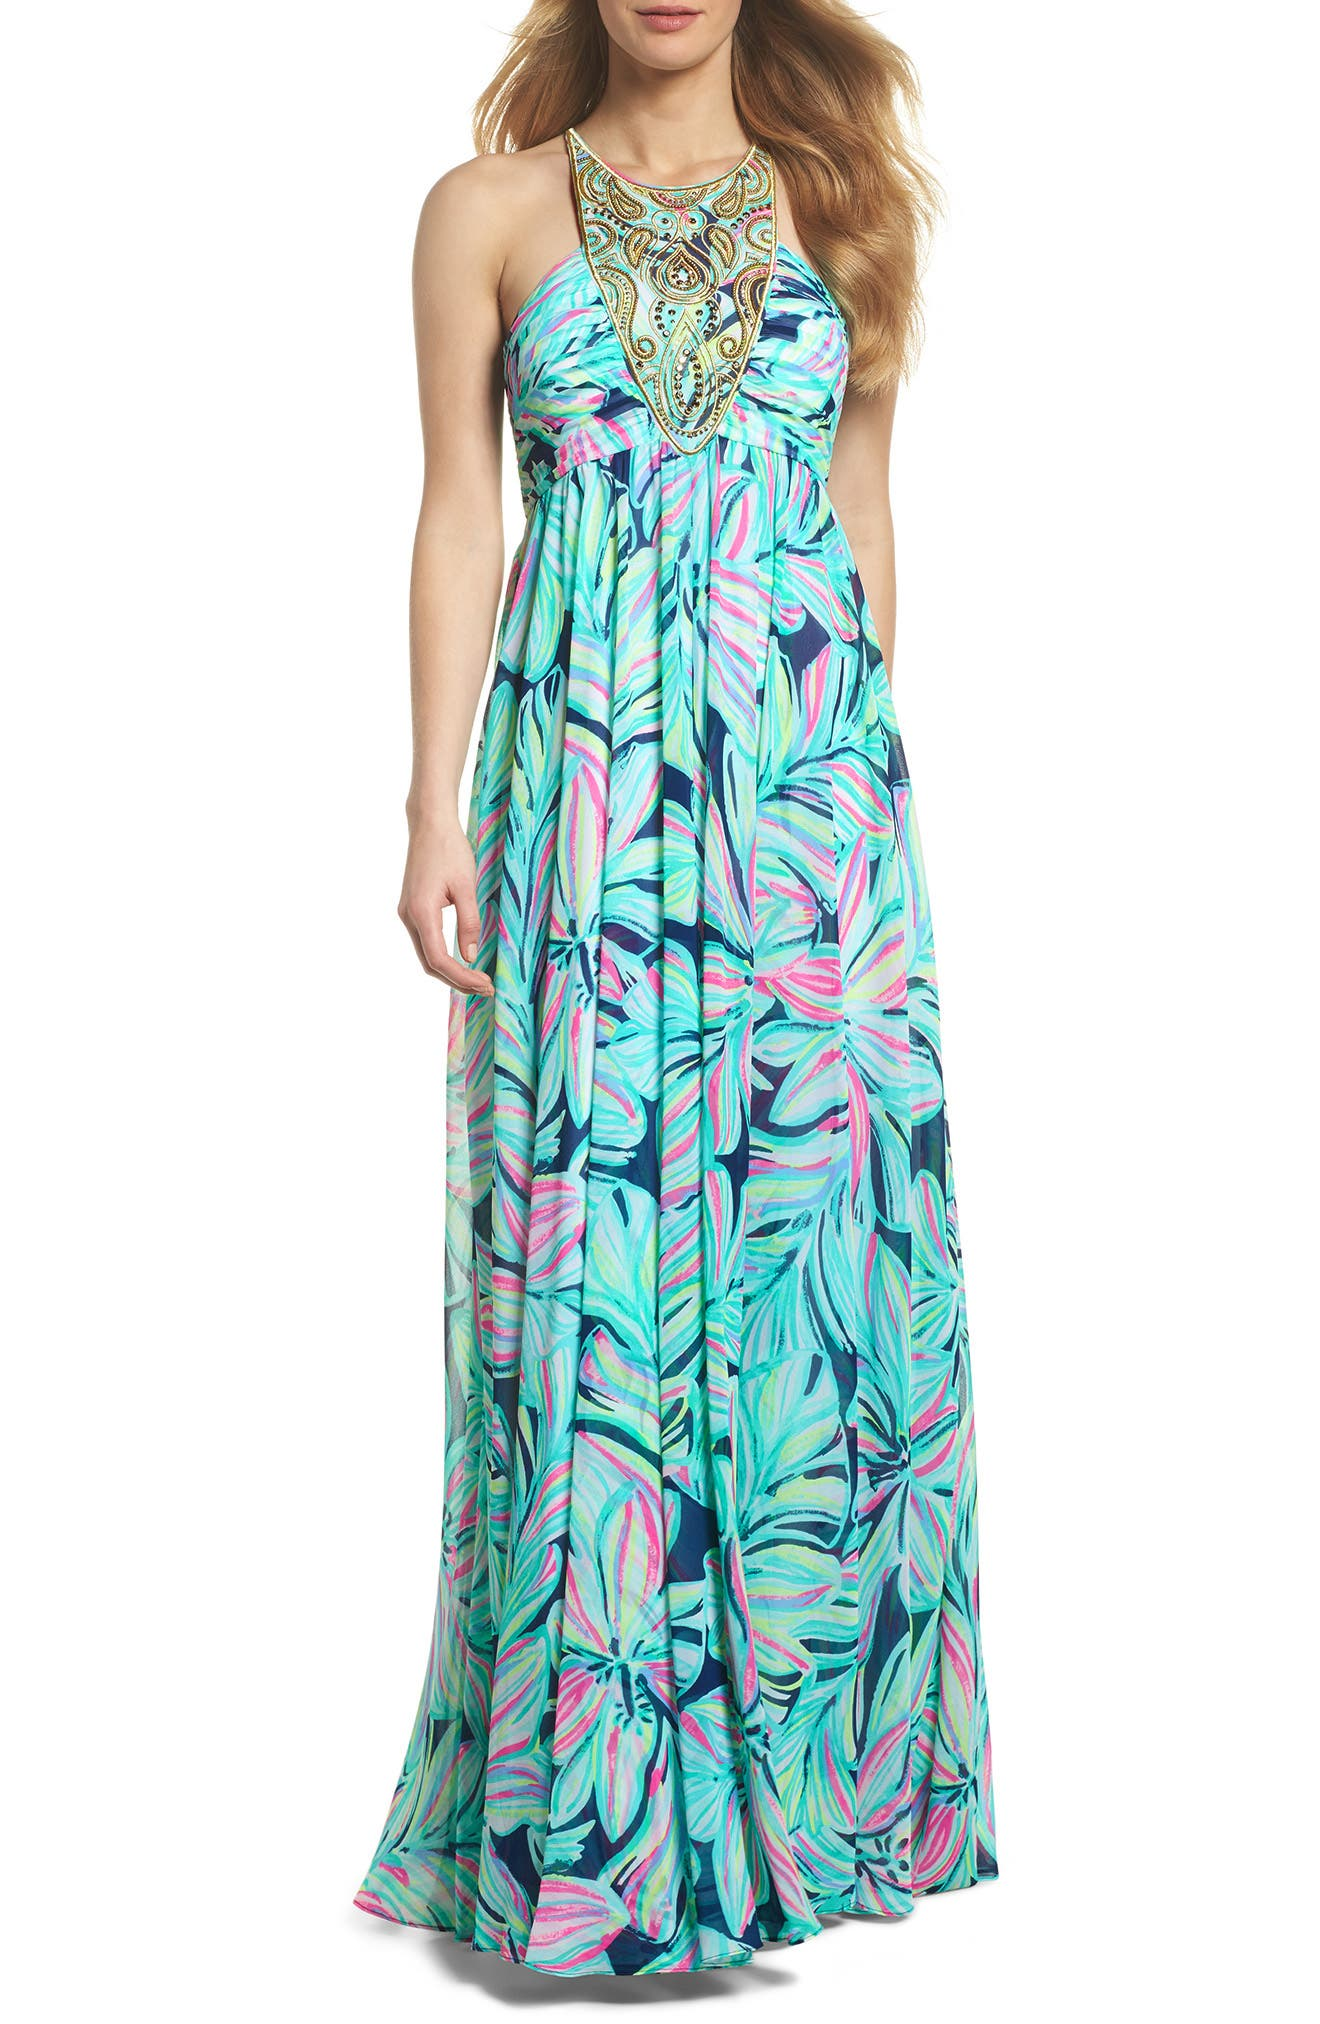 Alternate Image 1 Selected - Lilly Pulitzer® Lannette Embellished Chiffon Maxi Dress